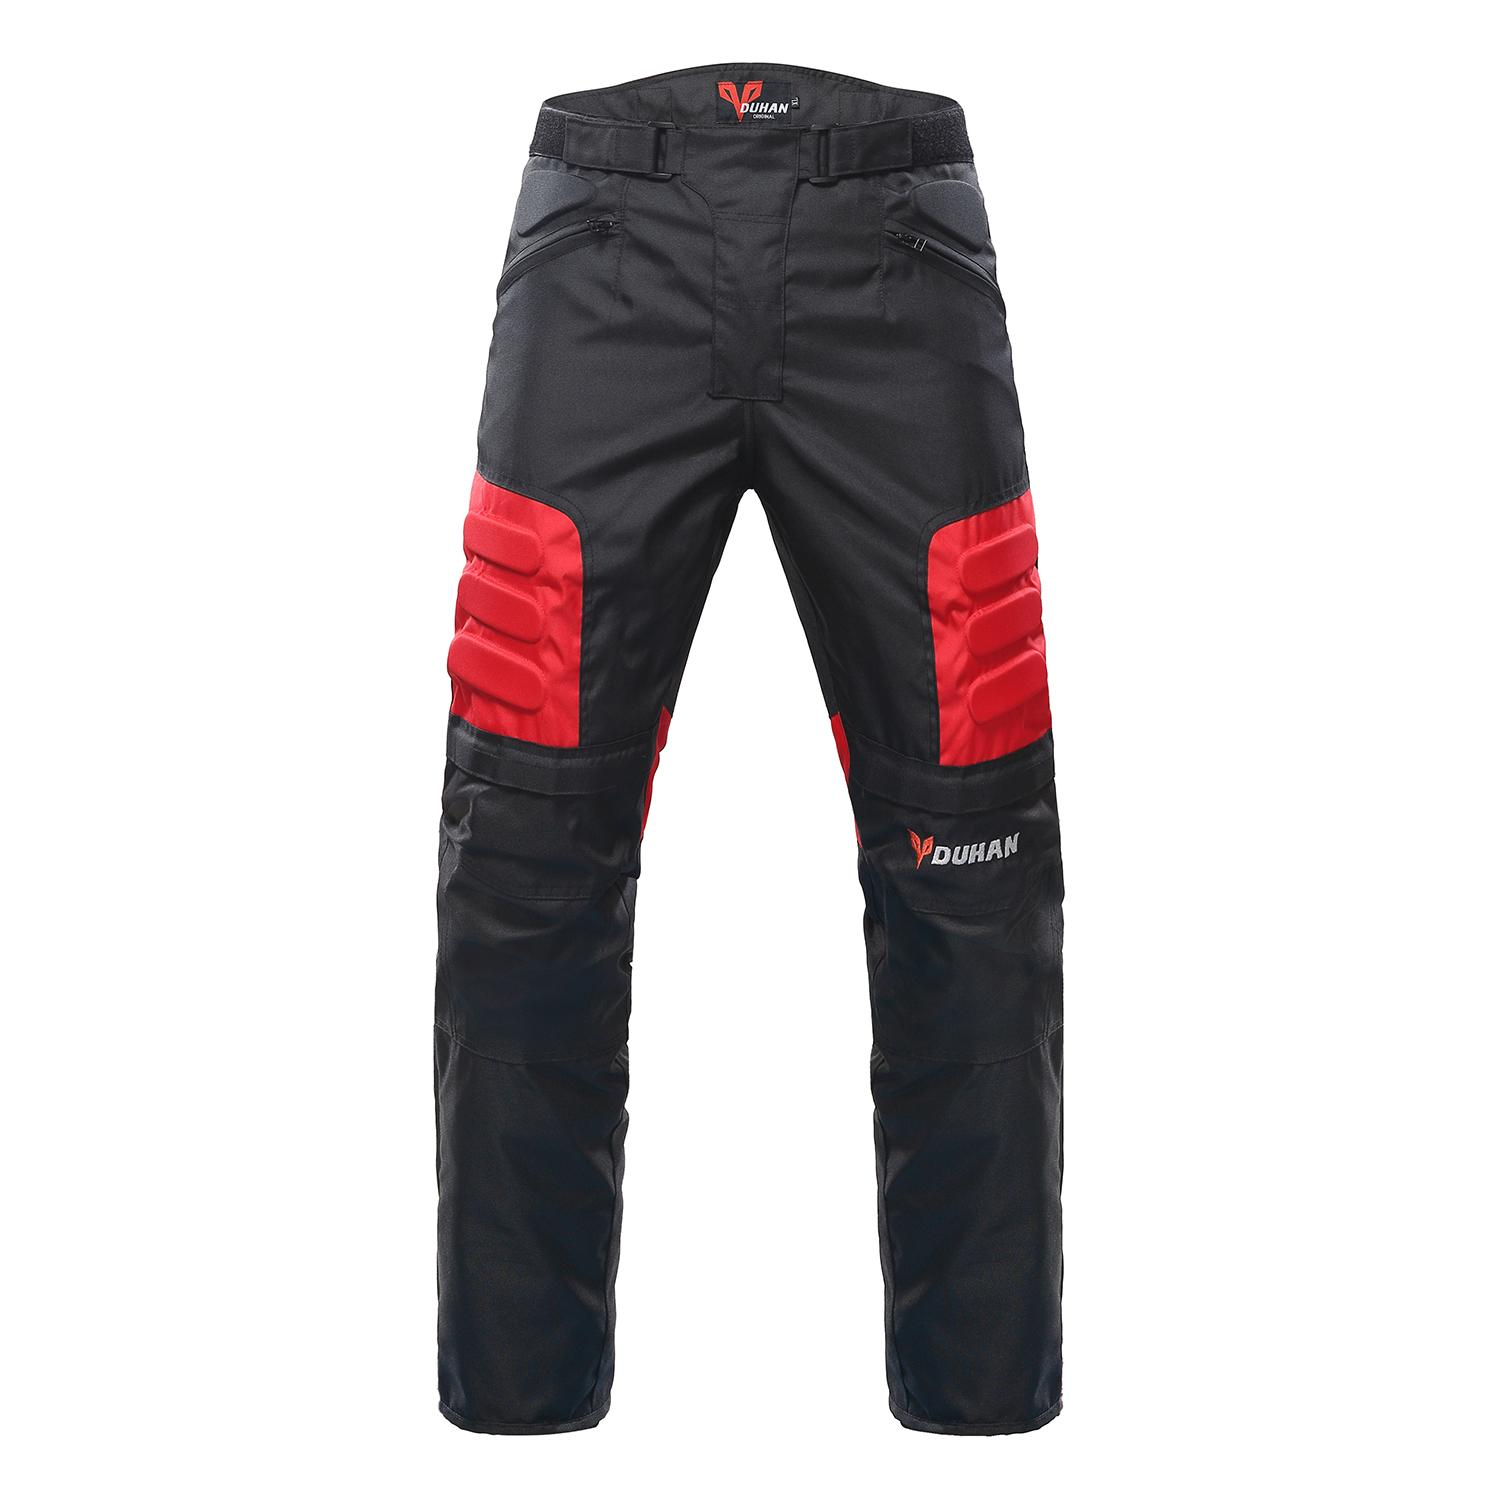 791f83c34 Motorcycle Suits for sale - Motorcycle Racing Suits online brands ...